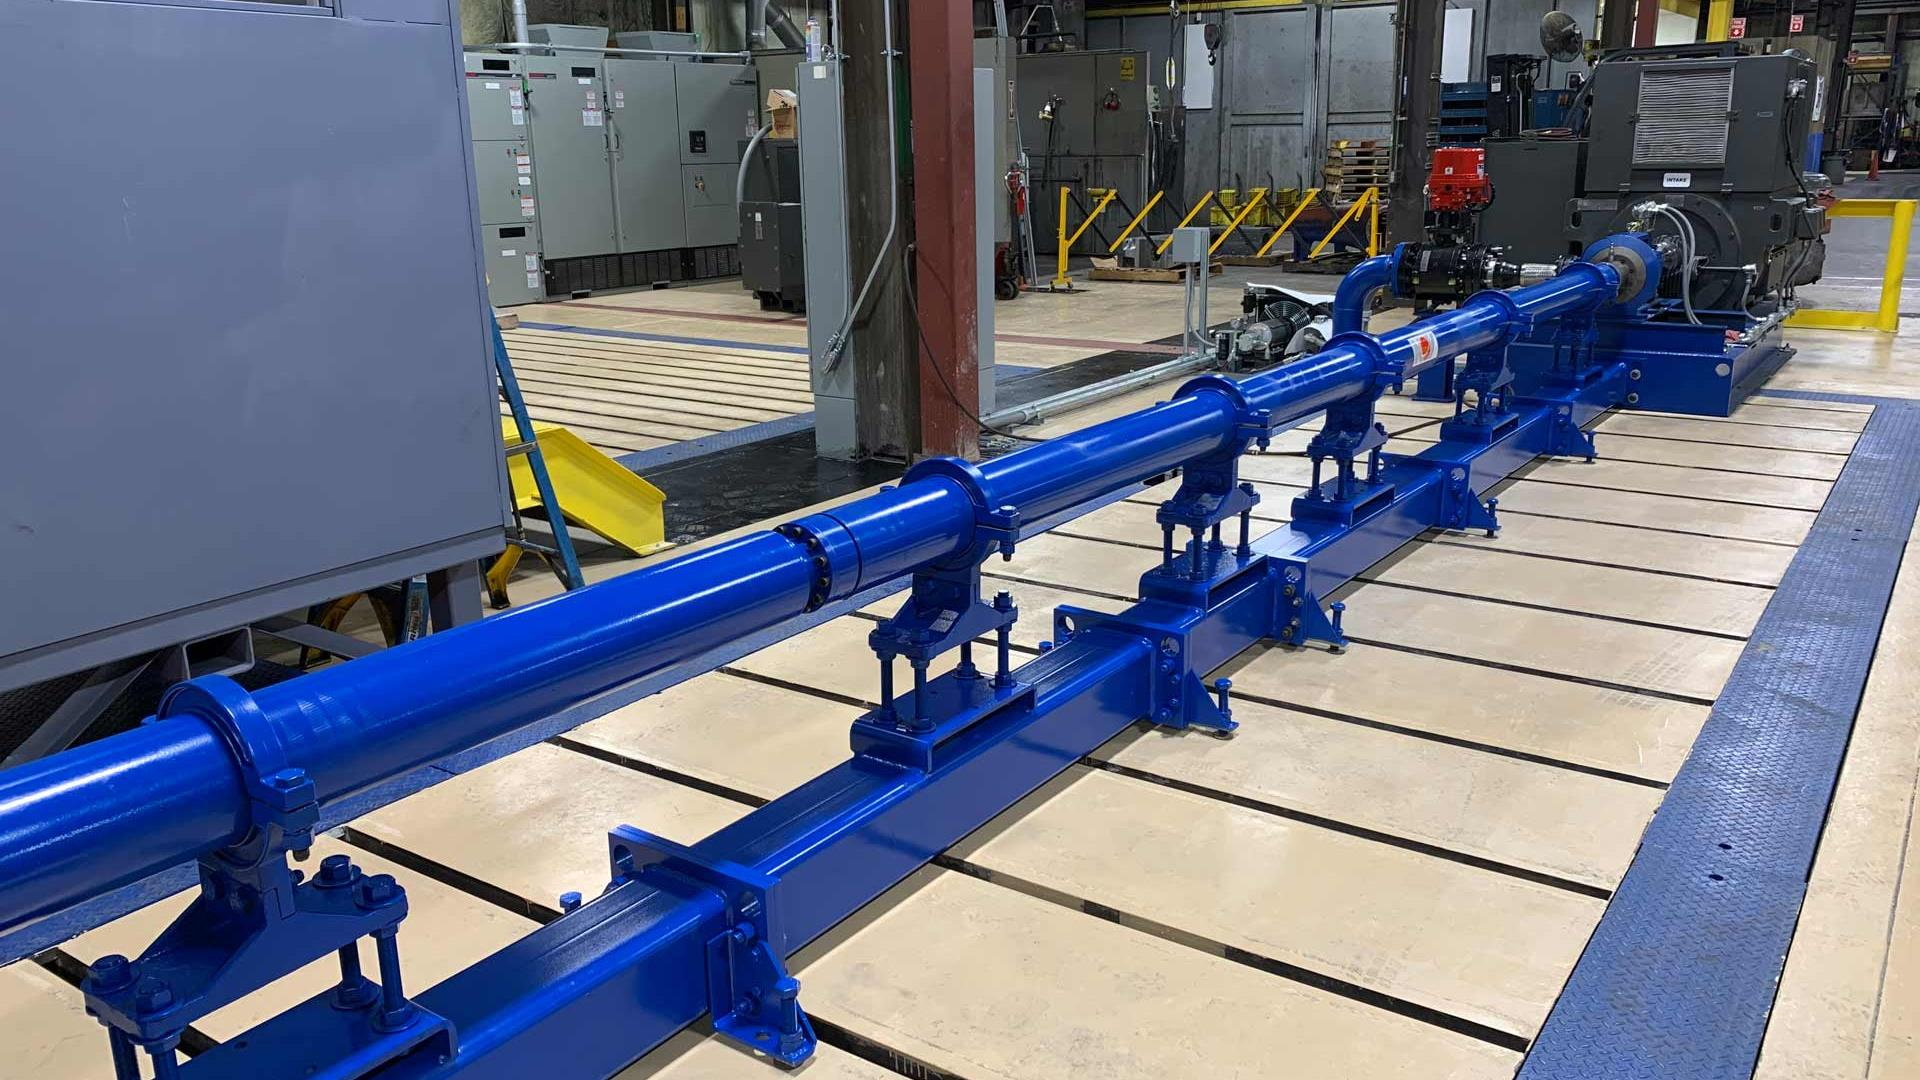 Horizontal Surface Pumping System in warehouse